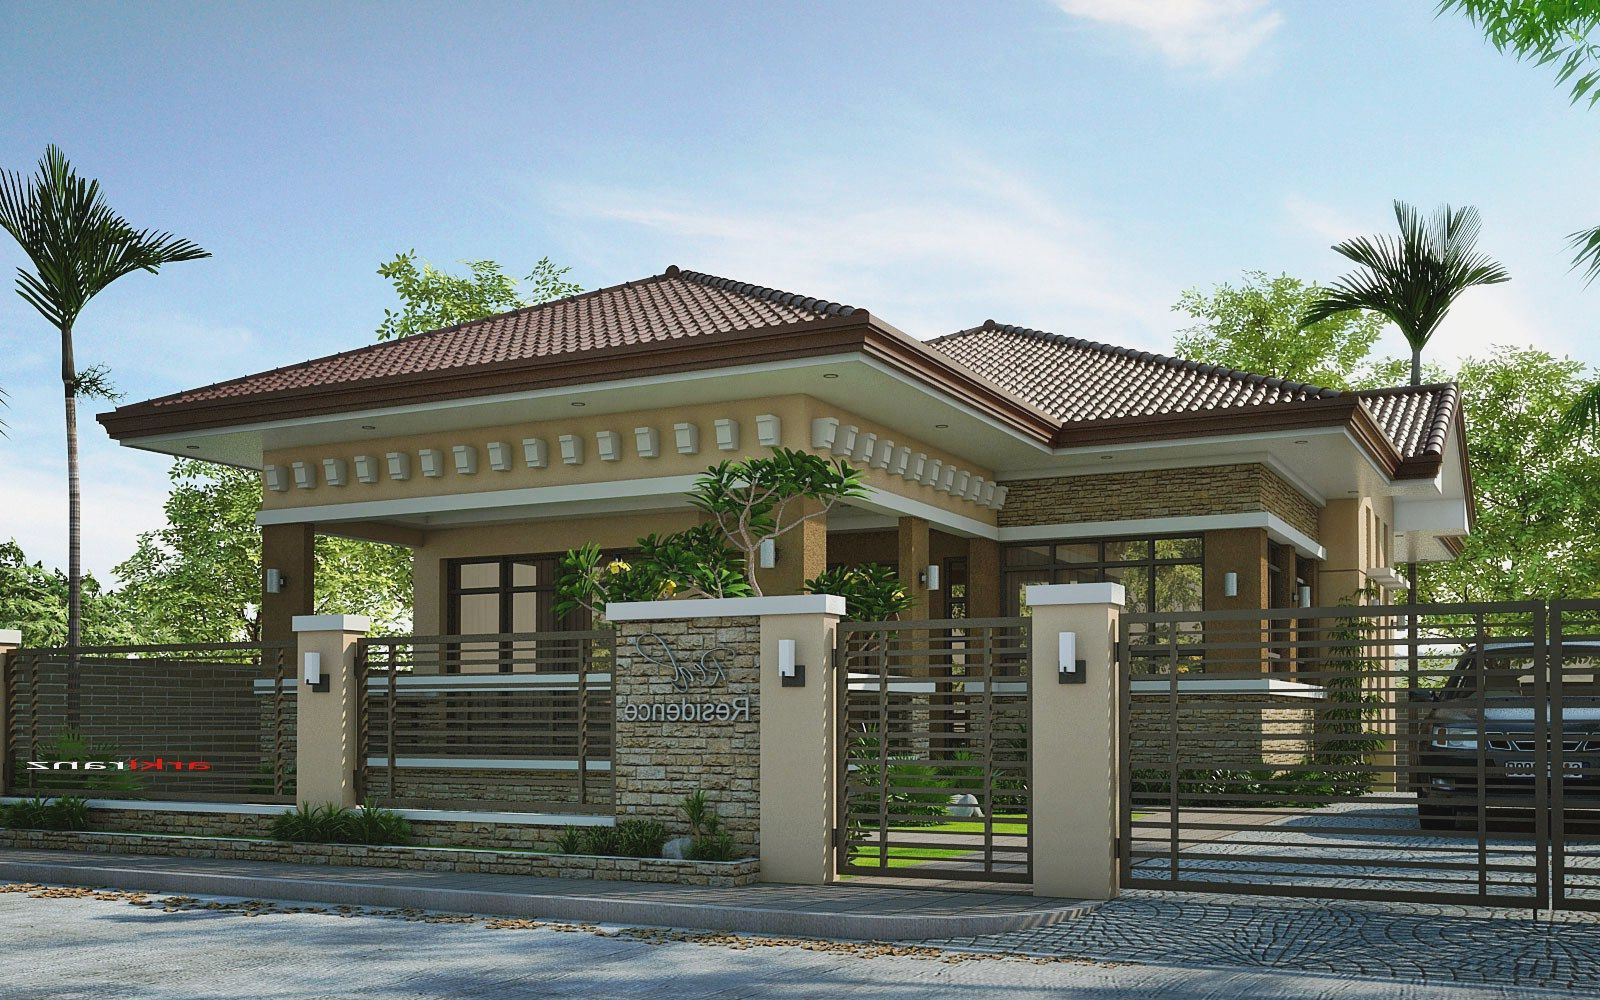 house design philippines - Google Search | Zen house design ... on brick bungalow house design, morocco house design, bungalow modern house design, europe house design, bungalow house design in malaysia,